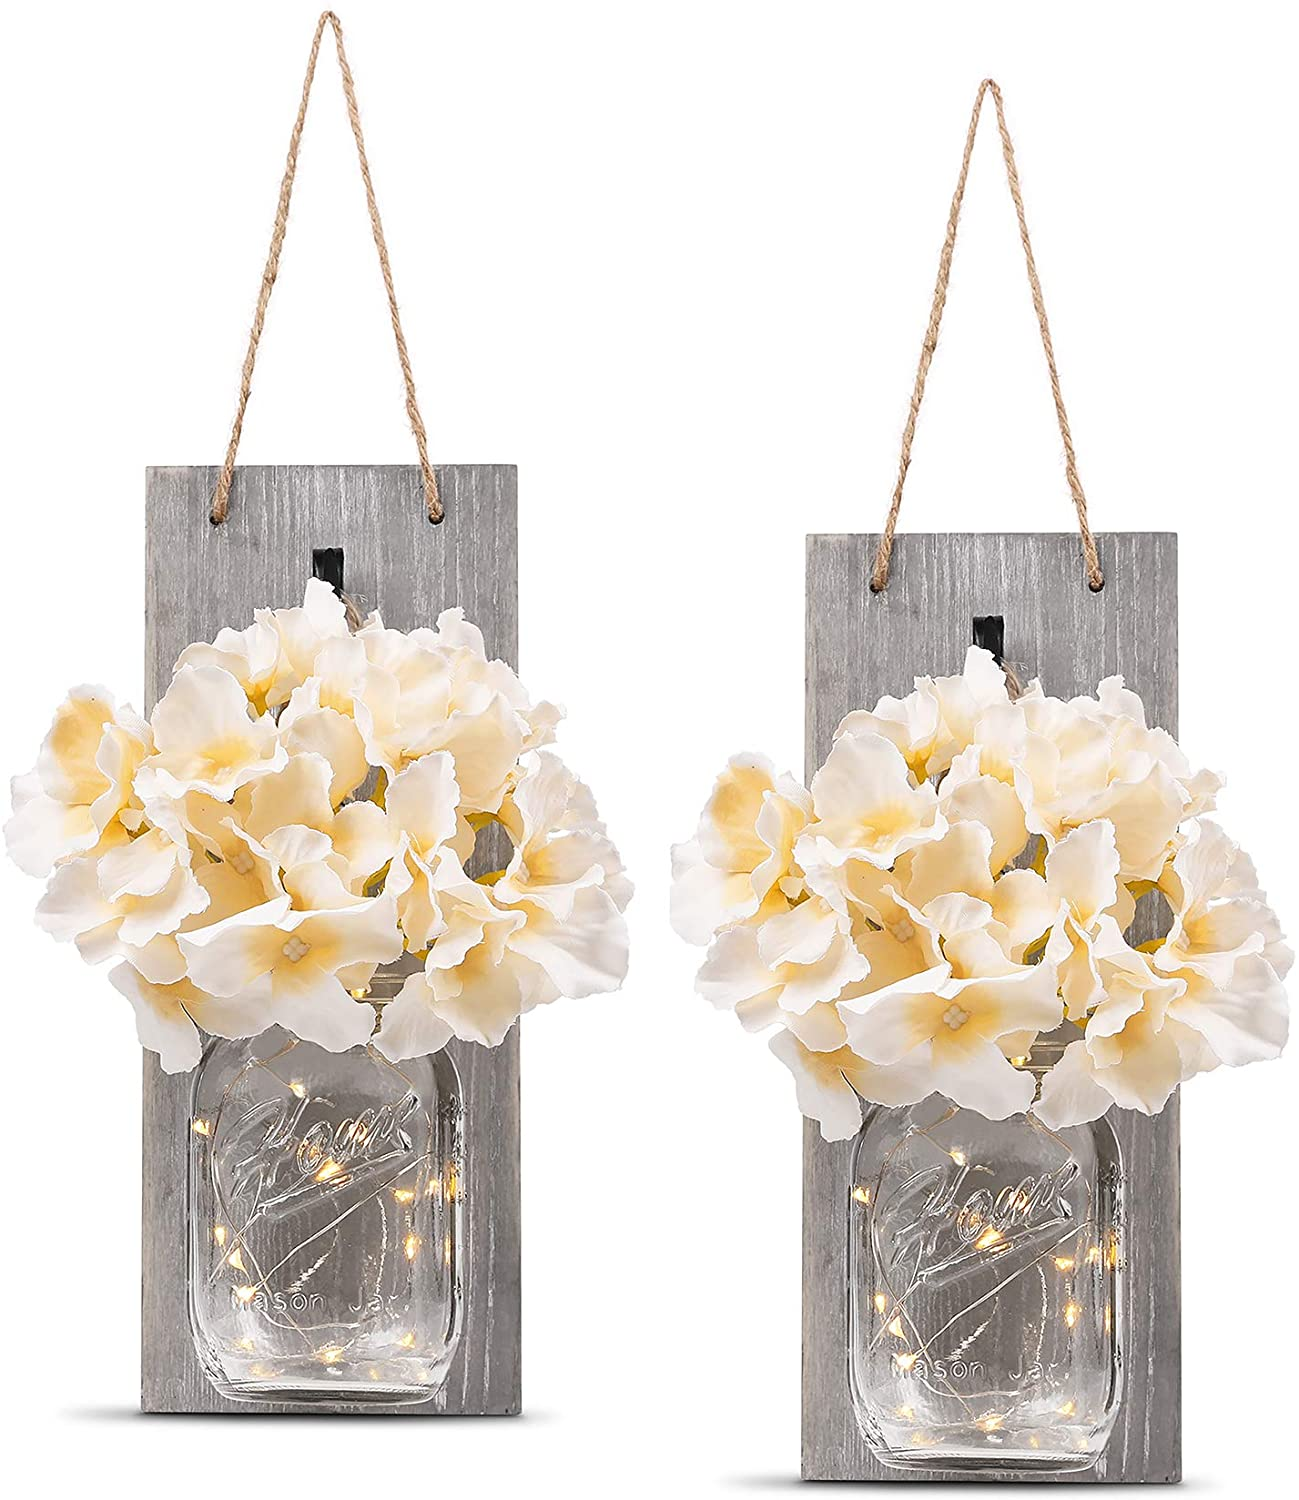 Rustic Wall Sconces - Mason Jars Sconce, Rustic Home Decor,Wrought Iron Hooks, Silk Hydrangea and LED Strip Lights Design 6 Hour Timer Home Decoration